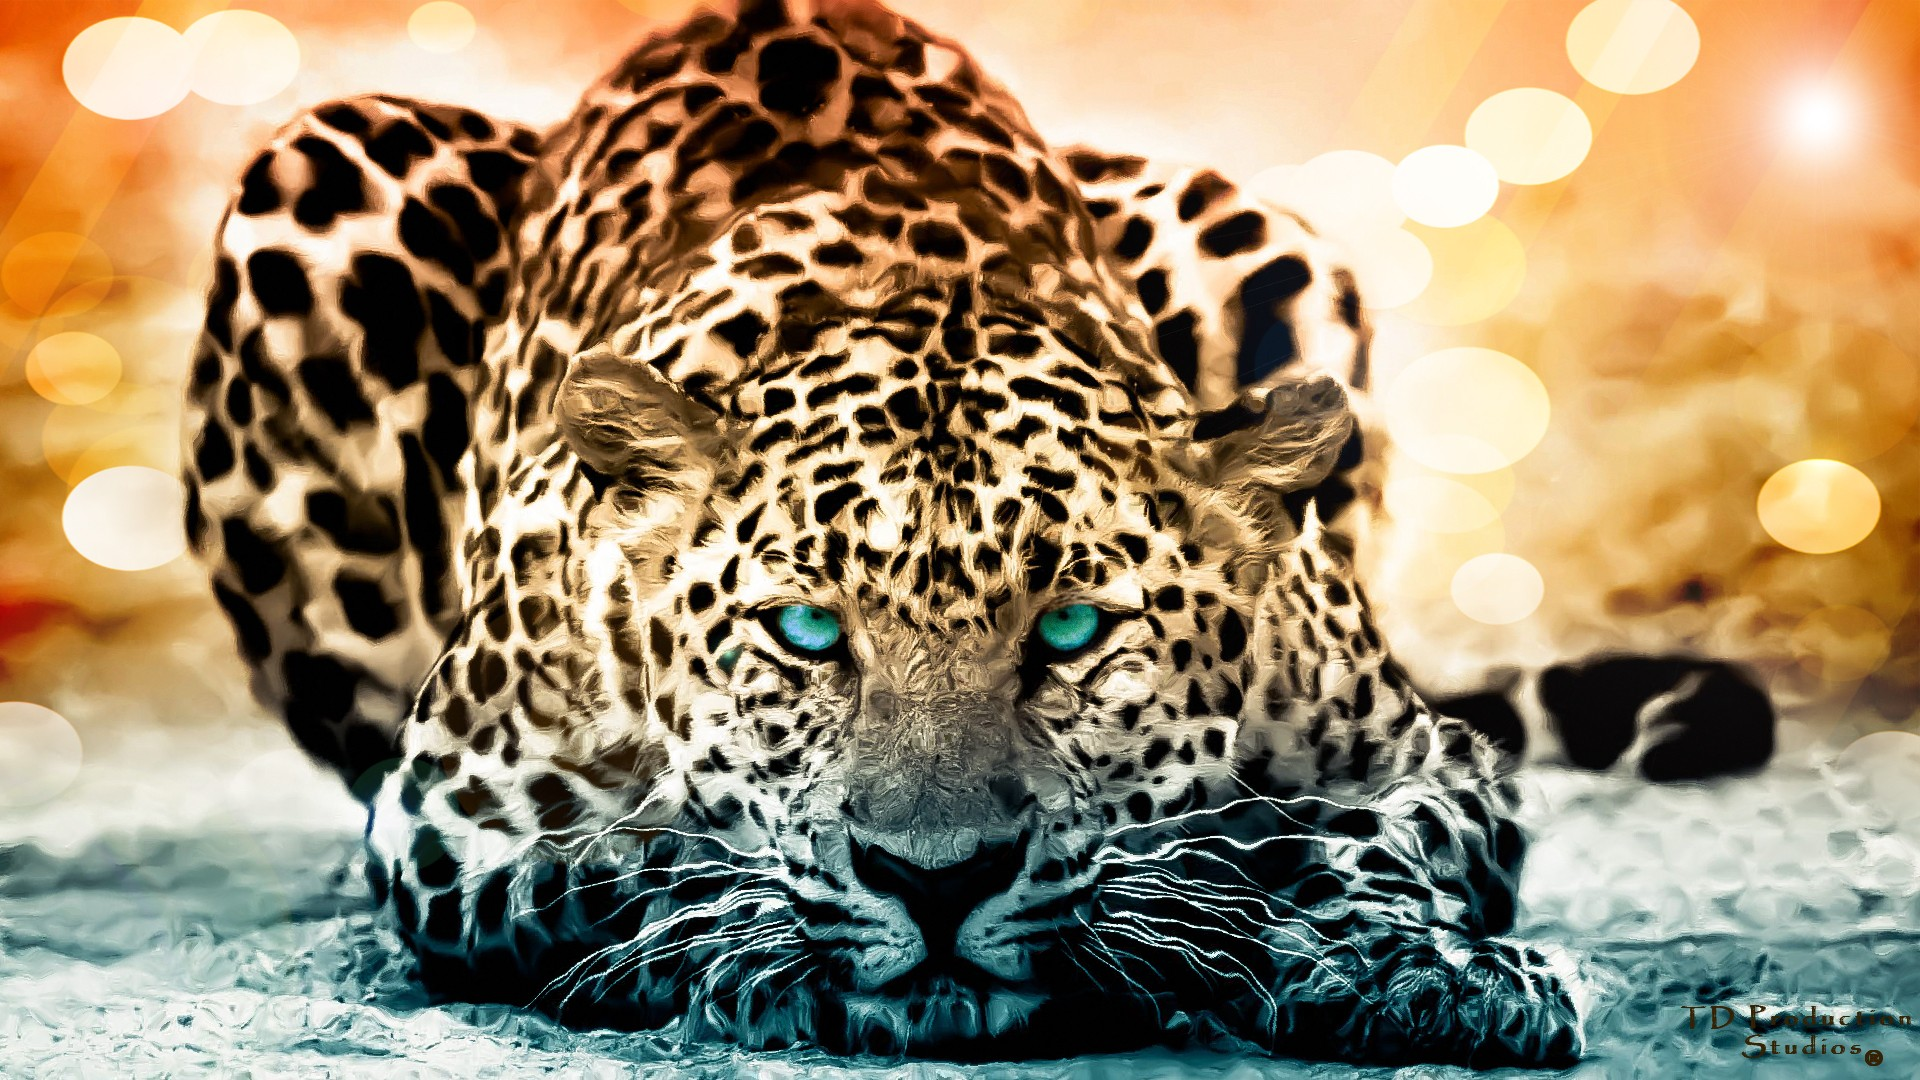 Cool Animal Wallpapers Hd: Backgrounds - Wallpaper Abyss